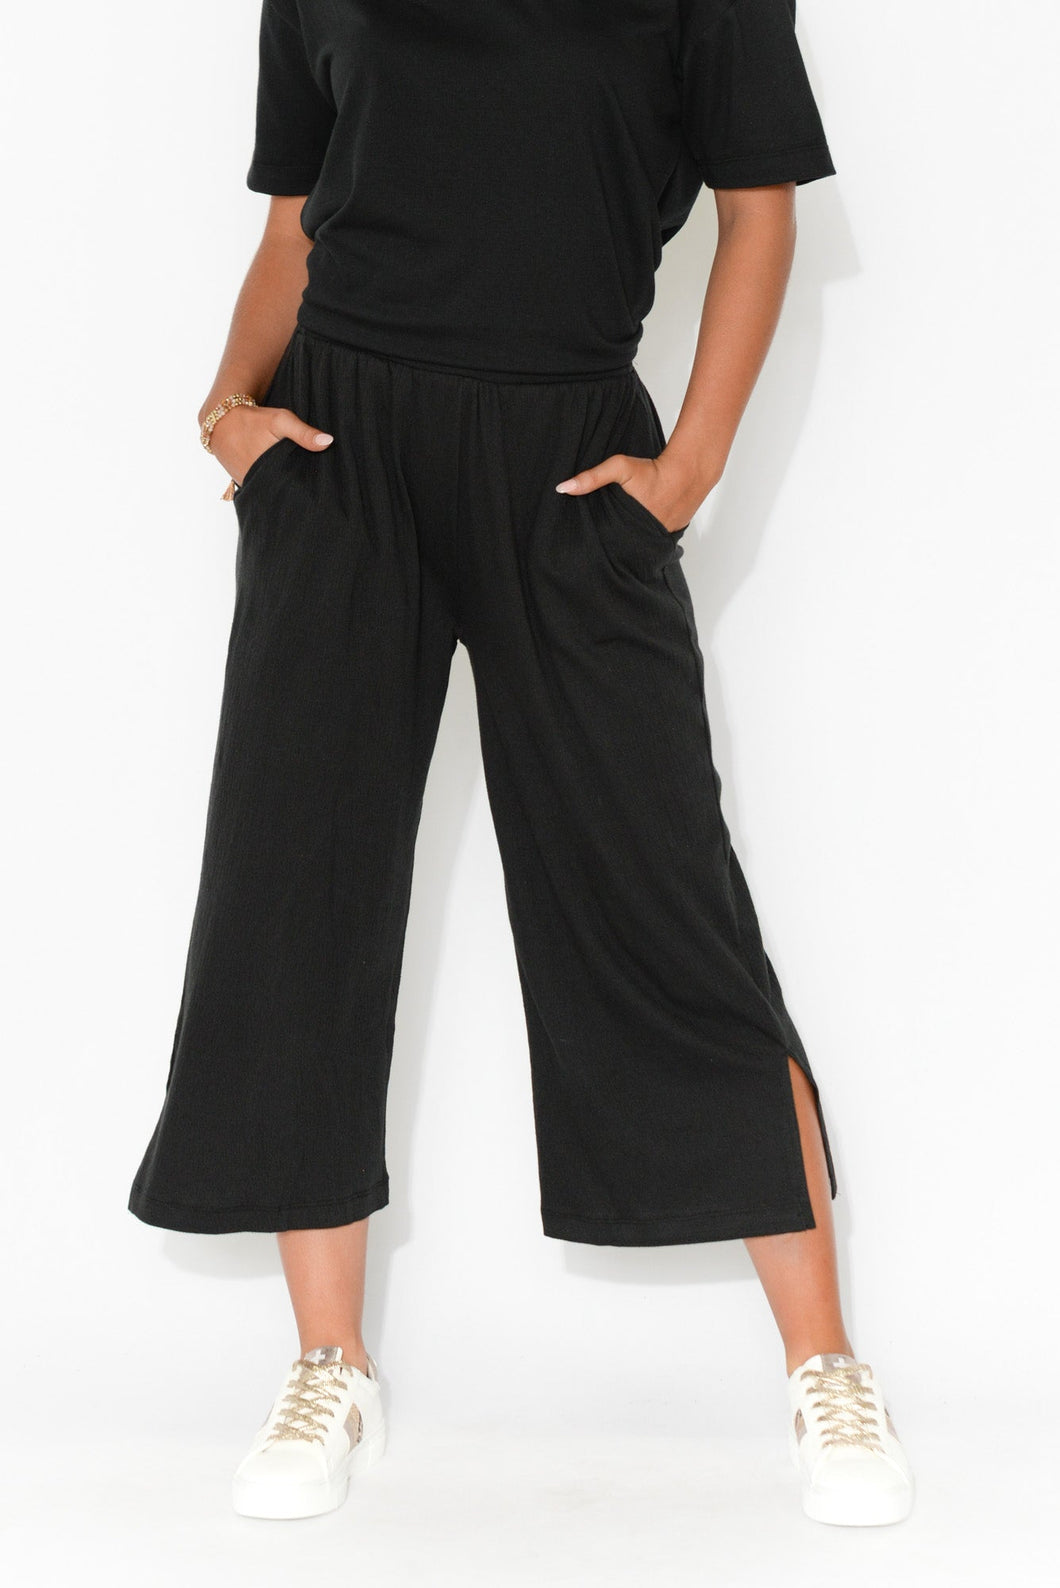 Palos Black Cropped Pant